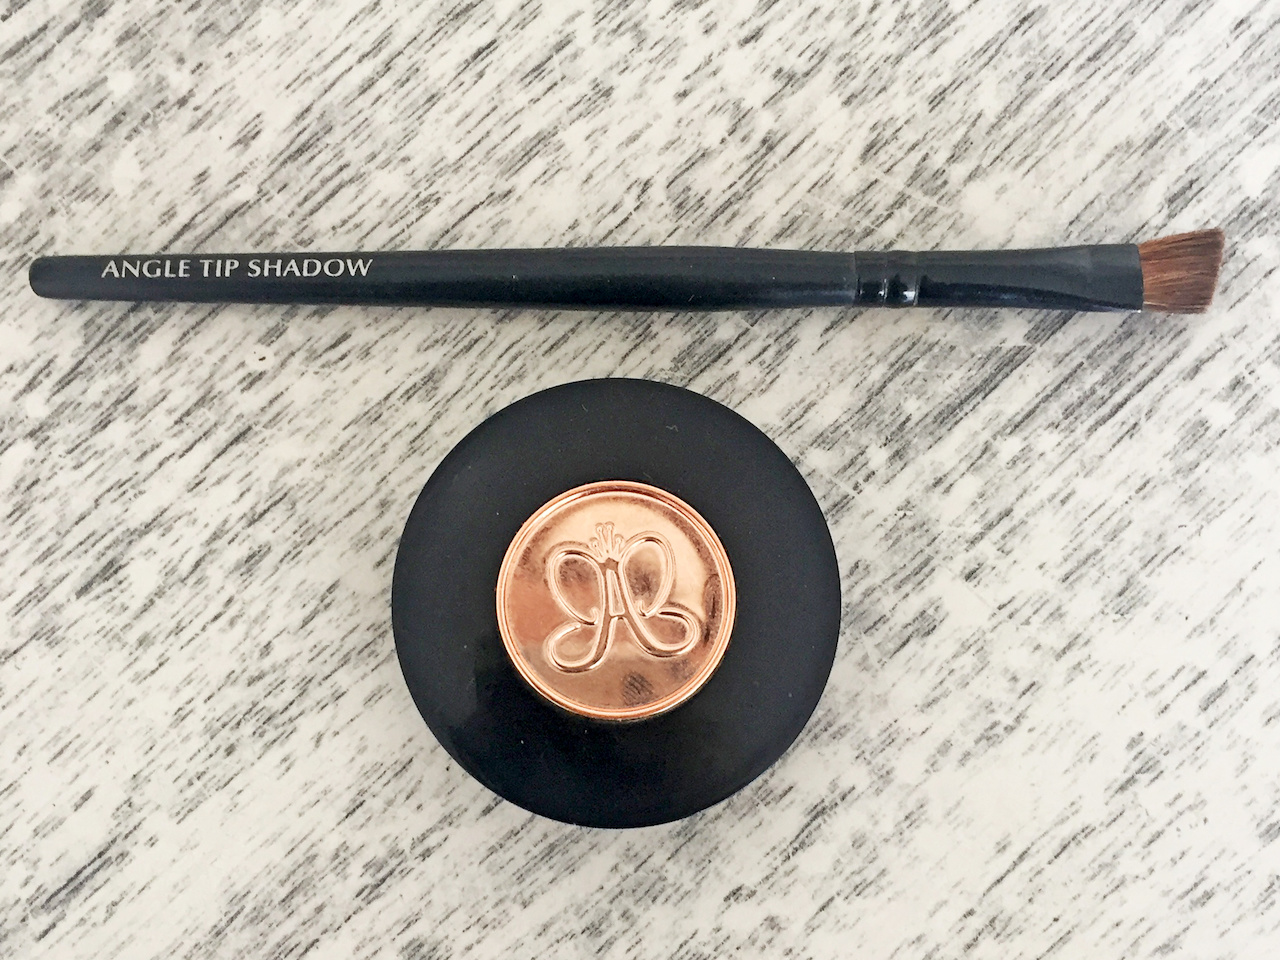 The Anastasia Beverly Hills Brow Powder Duo offers two shades for professional highlights and lowlights.